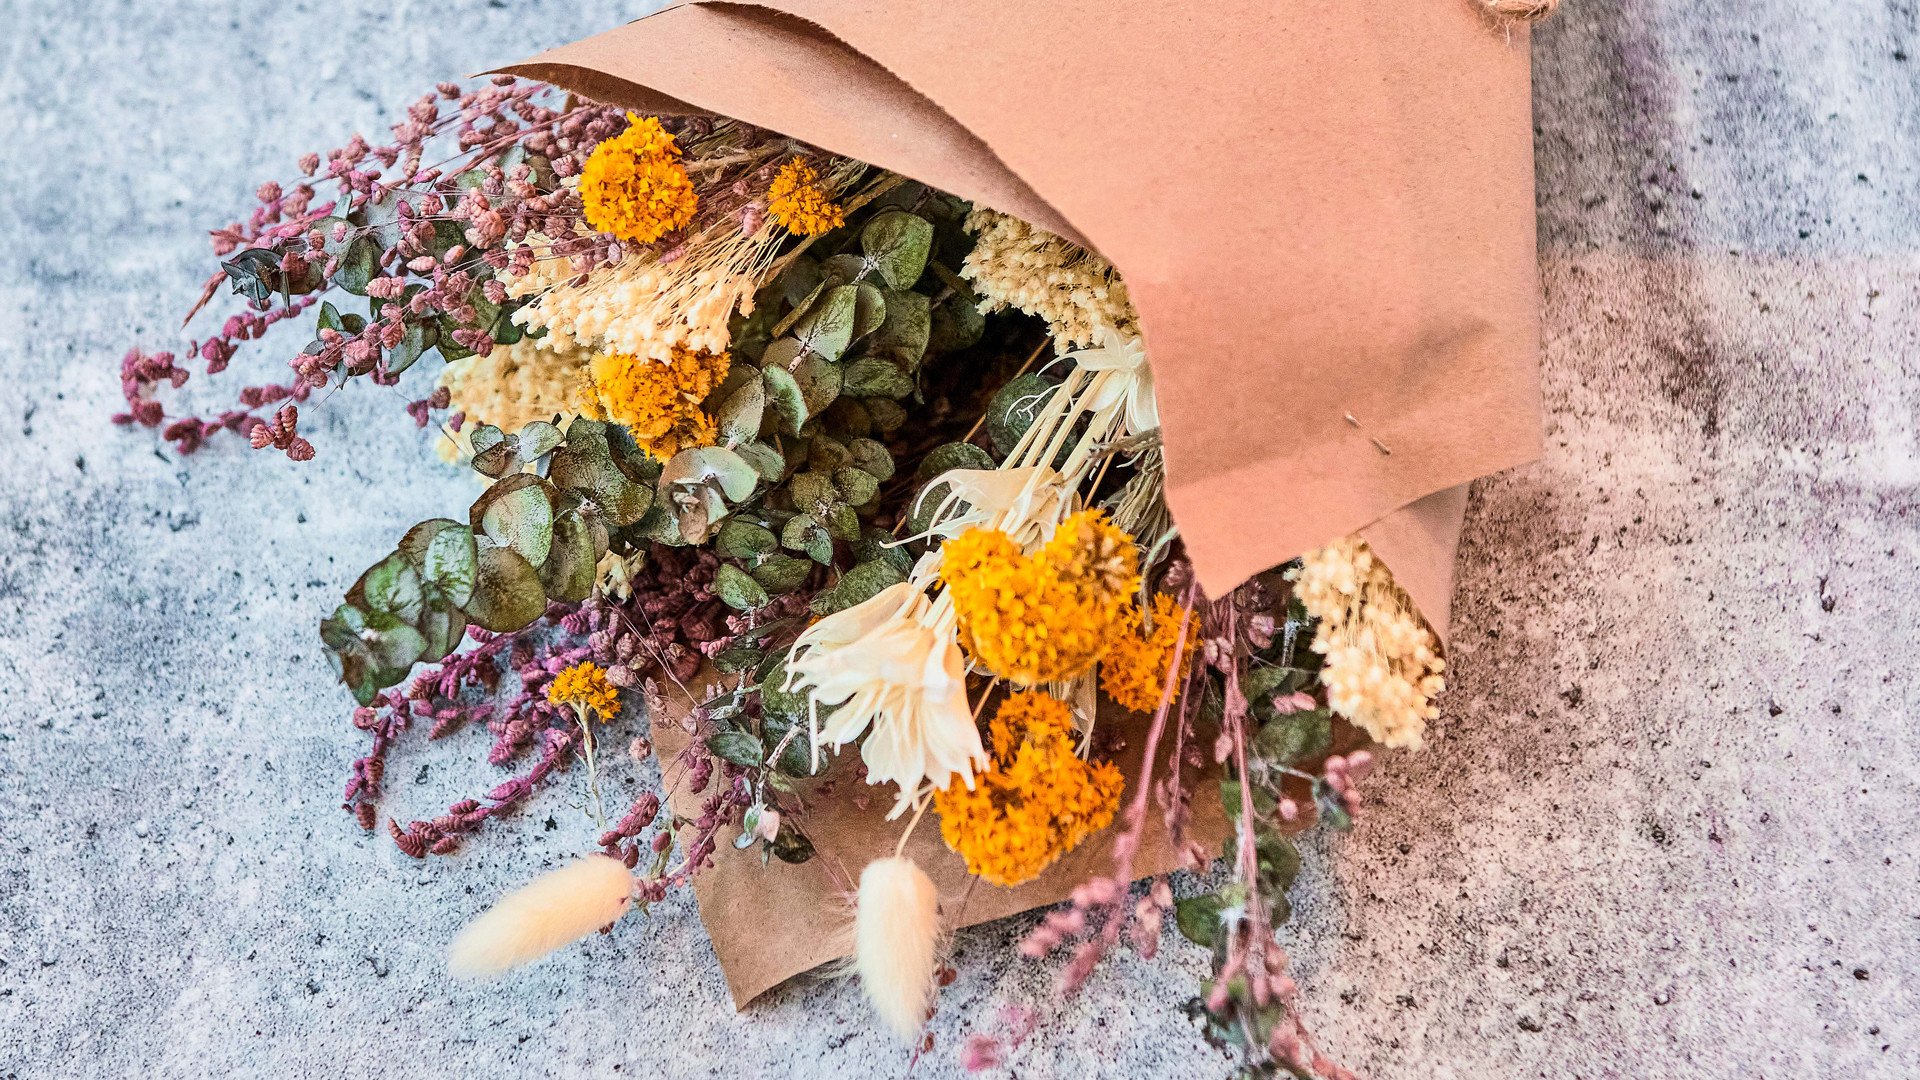 Restaurant review: Shook | Dried floral arrangements from Botany Floral Studio are available at Shook